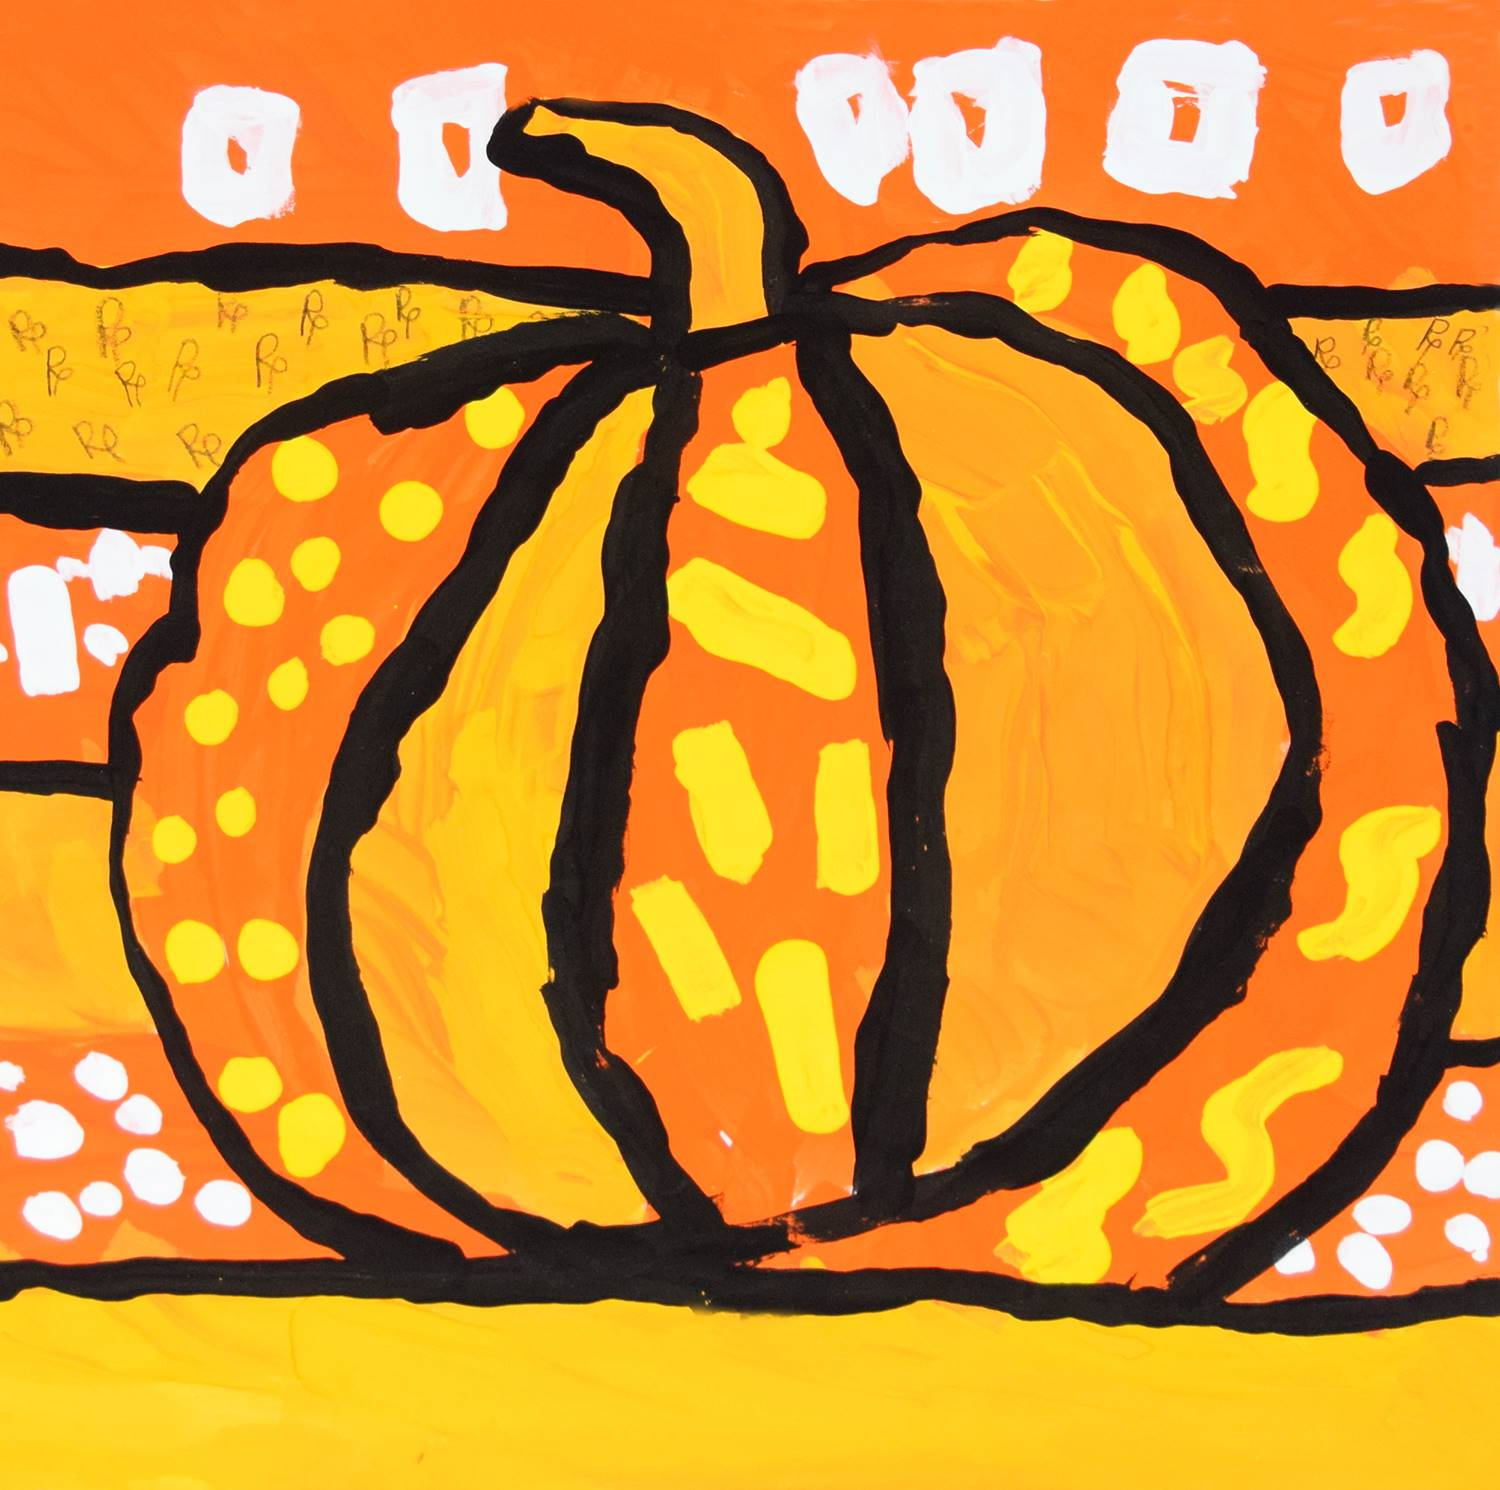 A brightly painted pumpkin in dark orange, yellow orange, black, white and yellow by Preston.